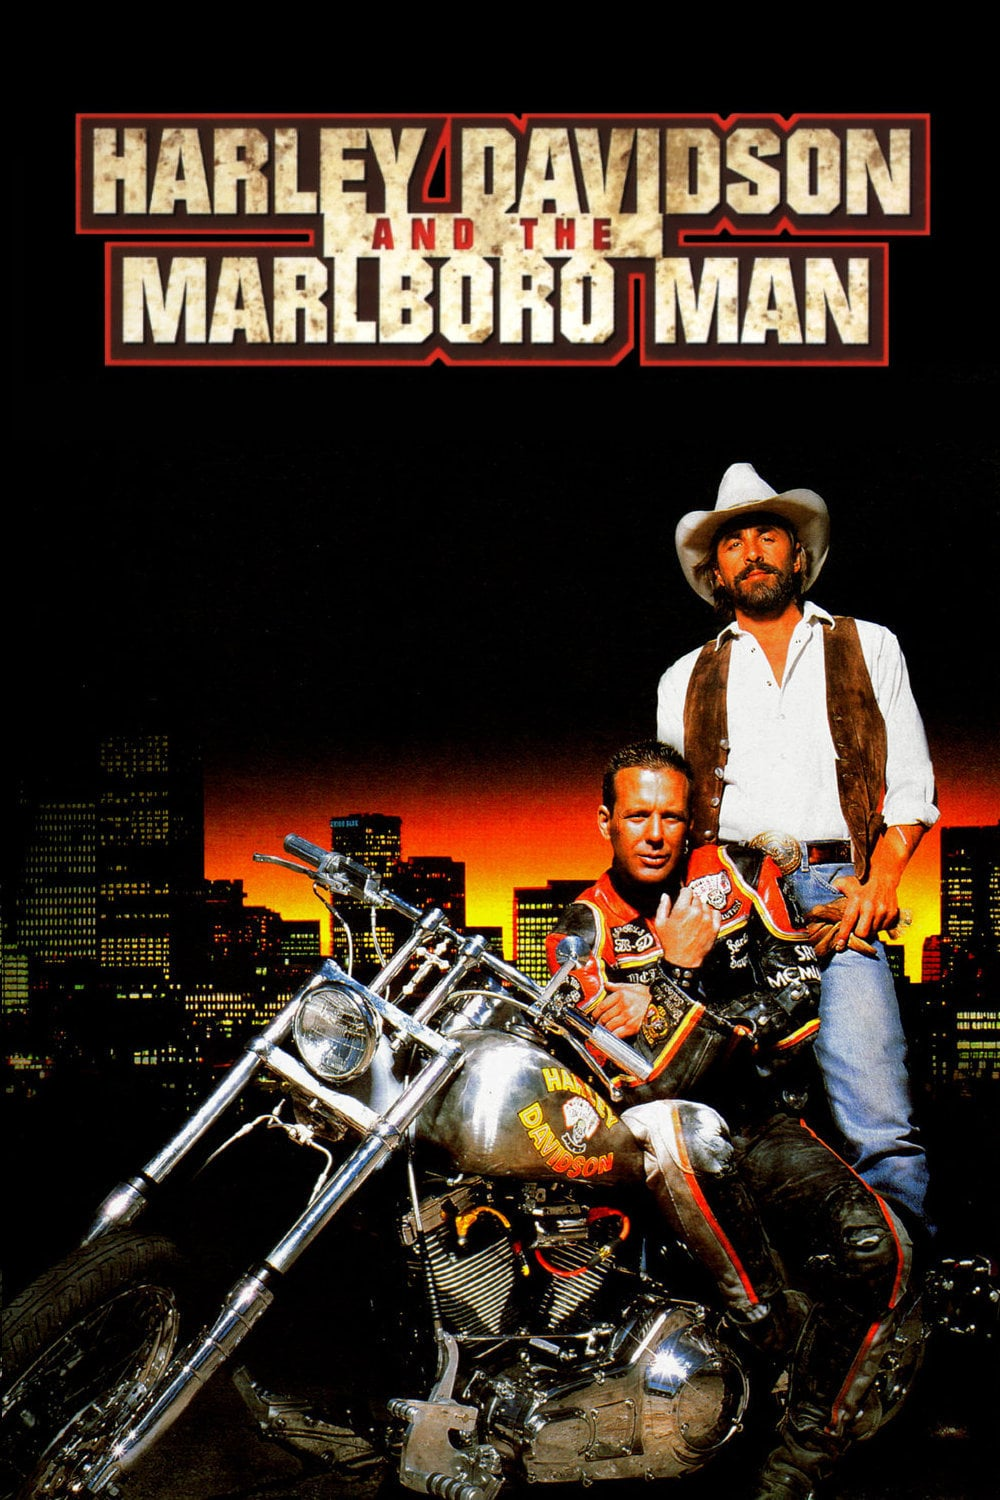 Harley Davidson And The Marlboro Man Movie Streaming Online Watch